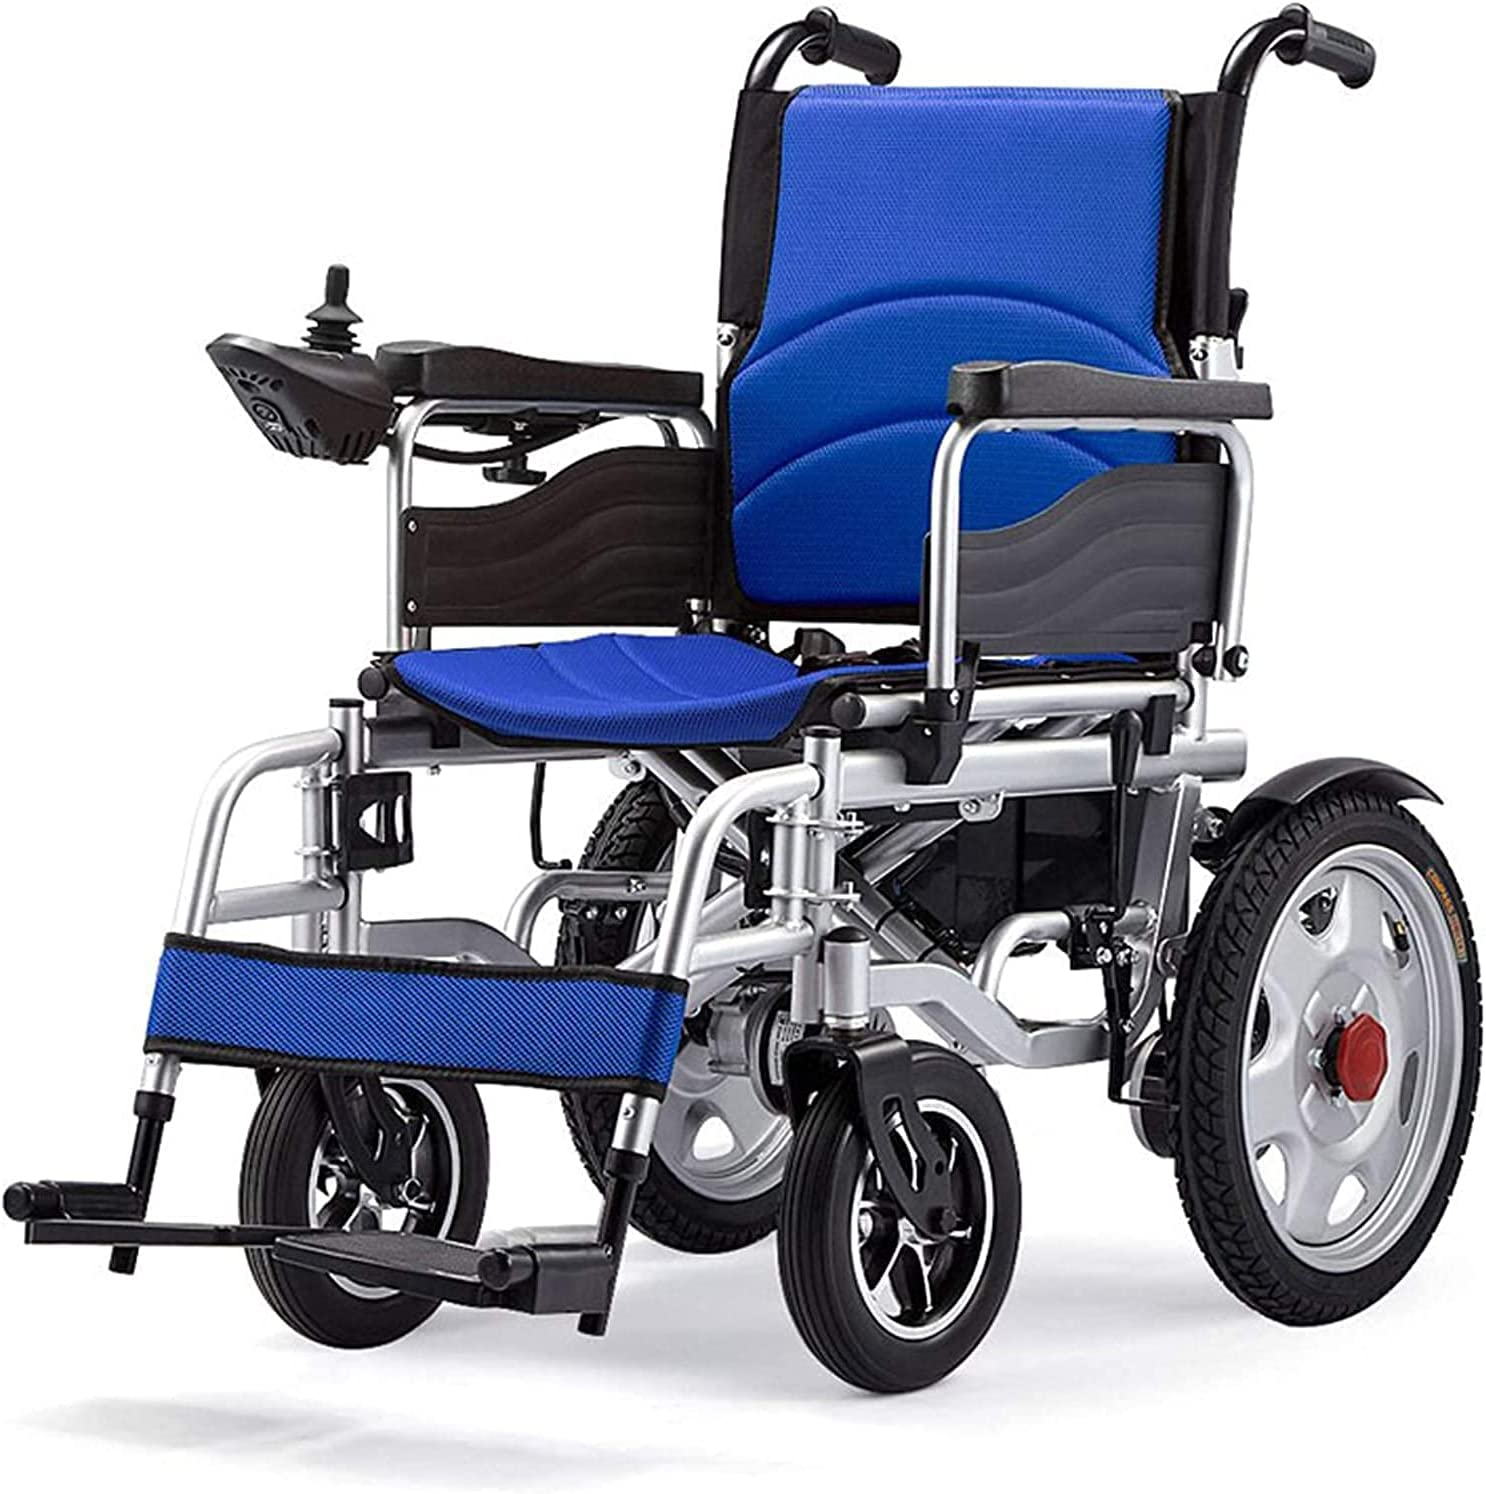 Electric Wheelchair Breathable Backrest 4 years warranty Folding trend rank and Portable